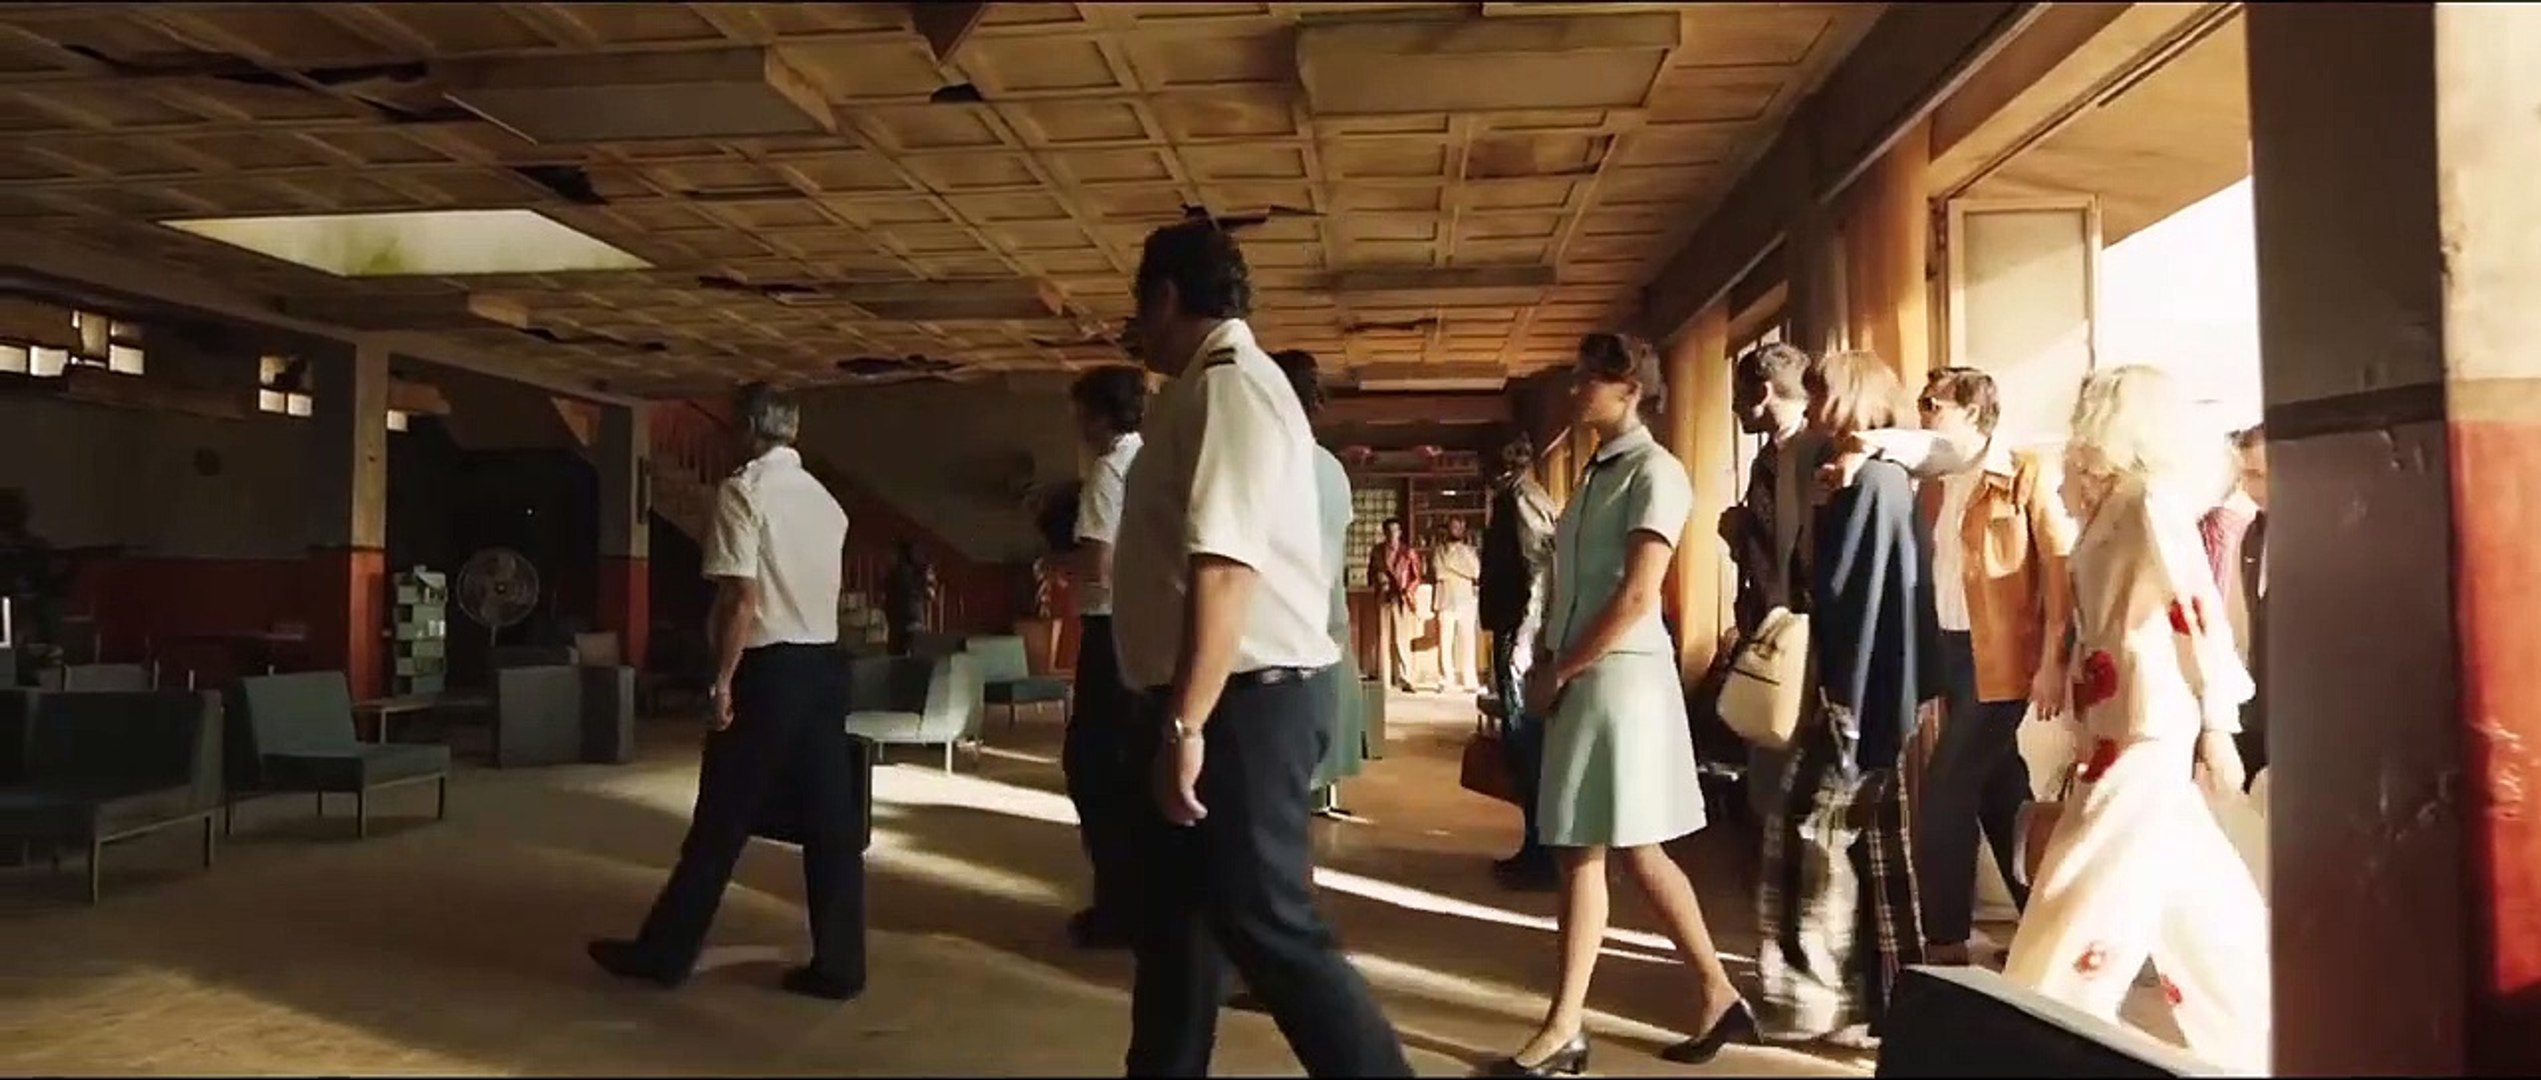 7 Days in Entebbe Trailer #1 (2018) - Movieclips Trailers